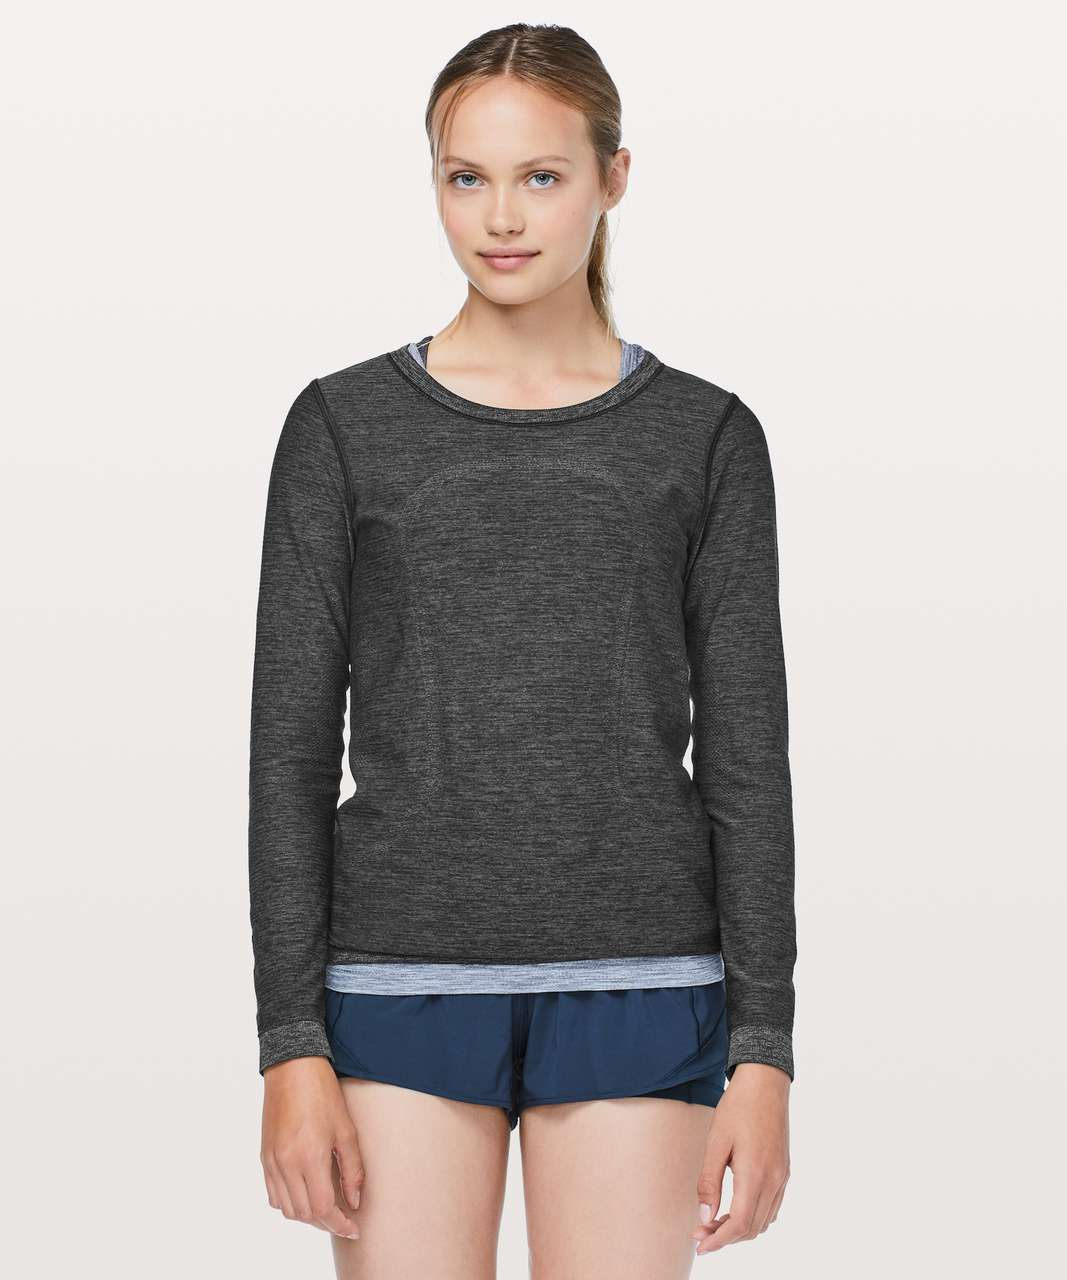 Lululemon Swiftly Tech Long Sleeve (Breeze) *Relaxed Fit - Black / Anchor